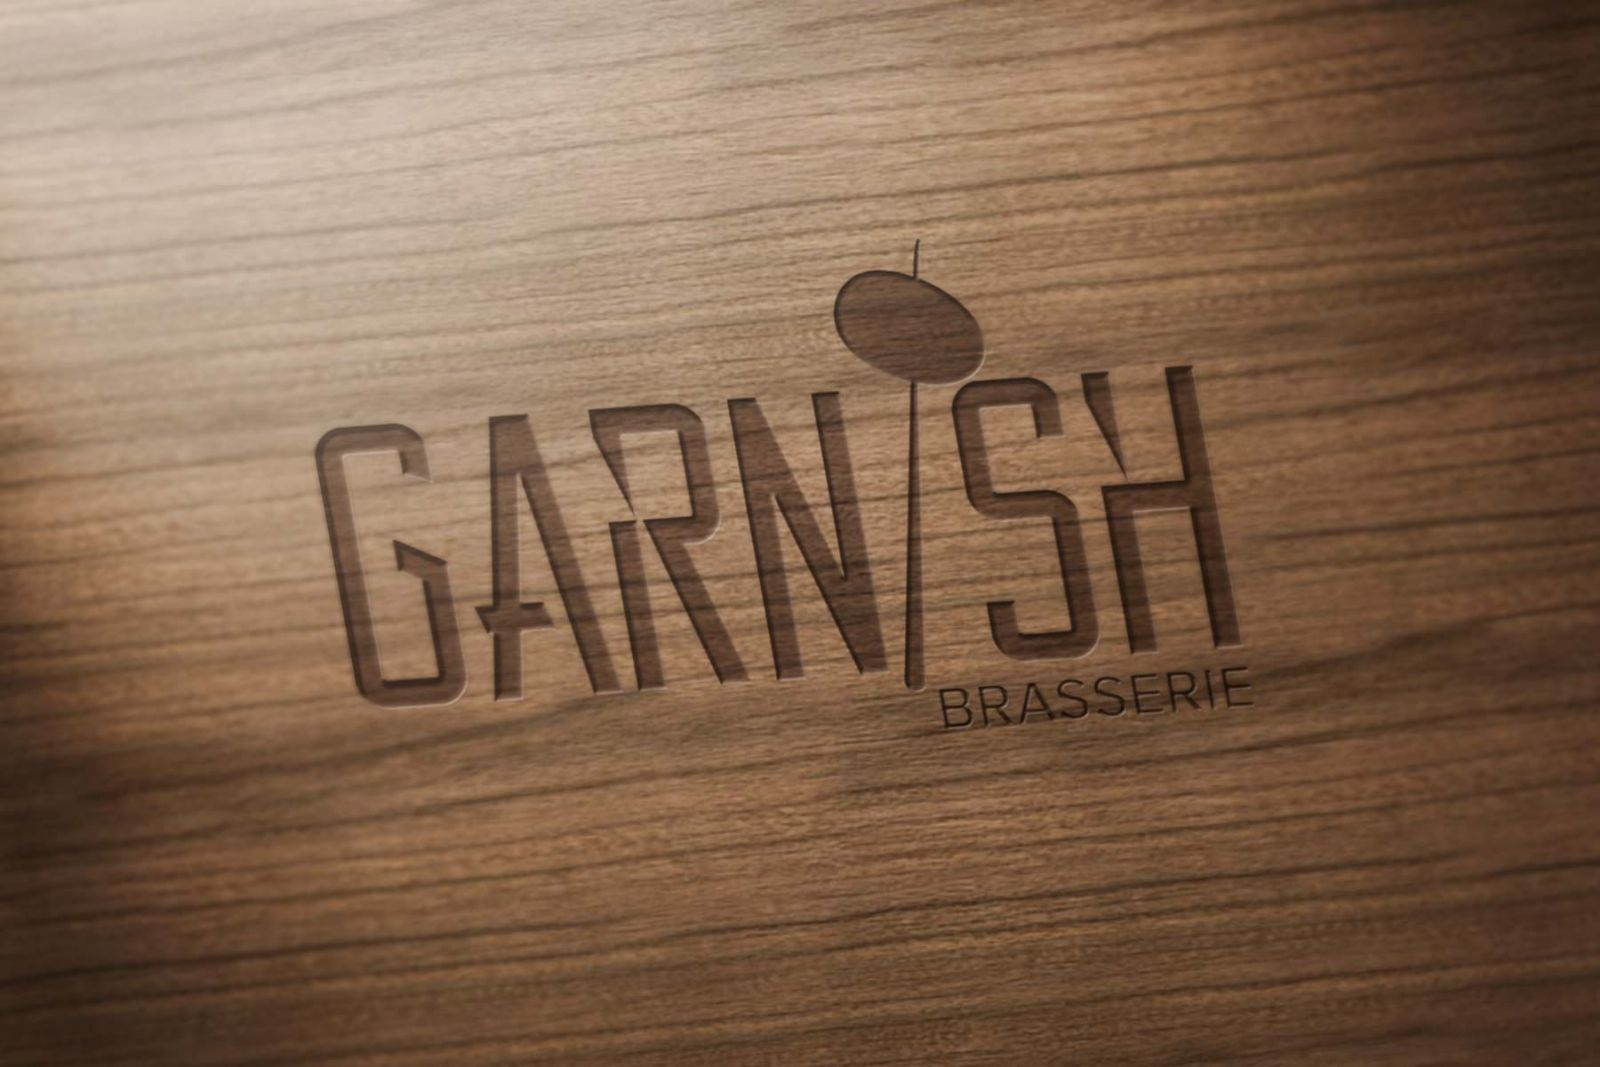 garnish logo ahsap oyma